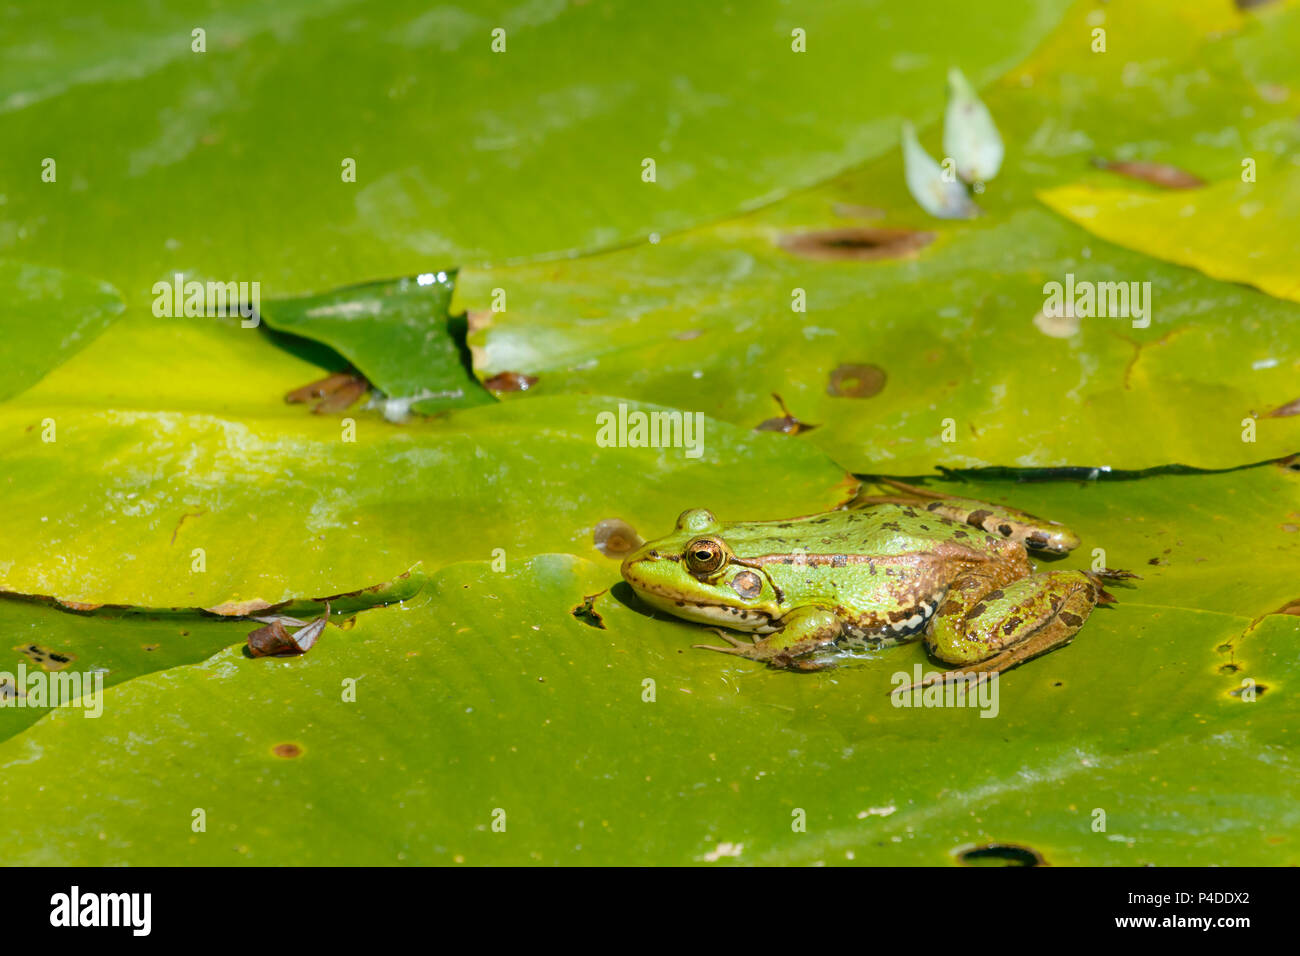 A Perez's frog (Pelophylax perezi) over lily's leaves, Rio Lobos Canyon, Soria, Spain. - Stock Image